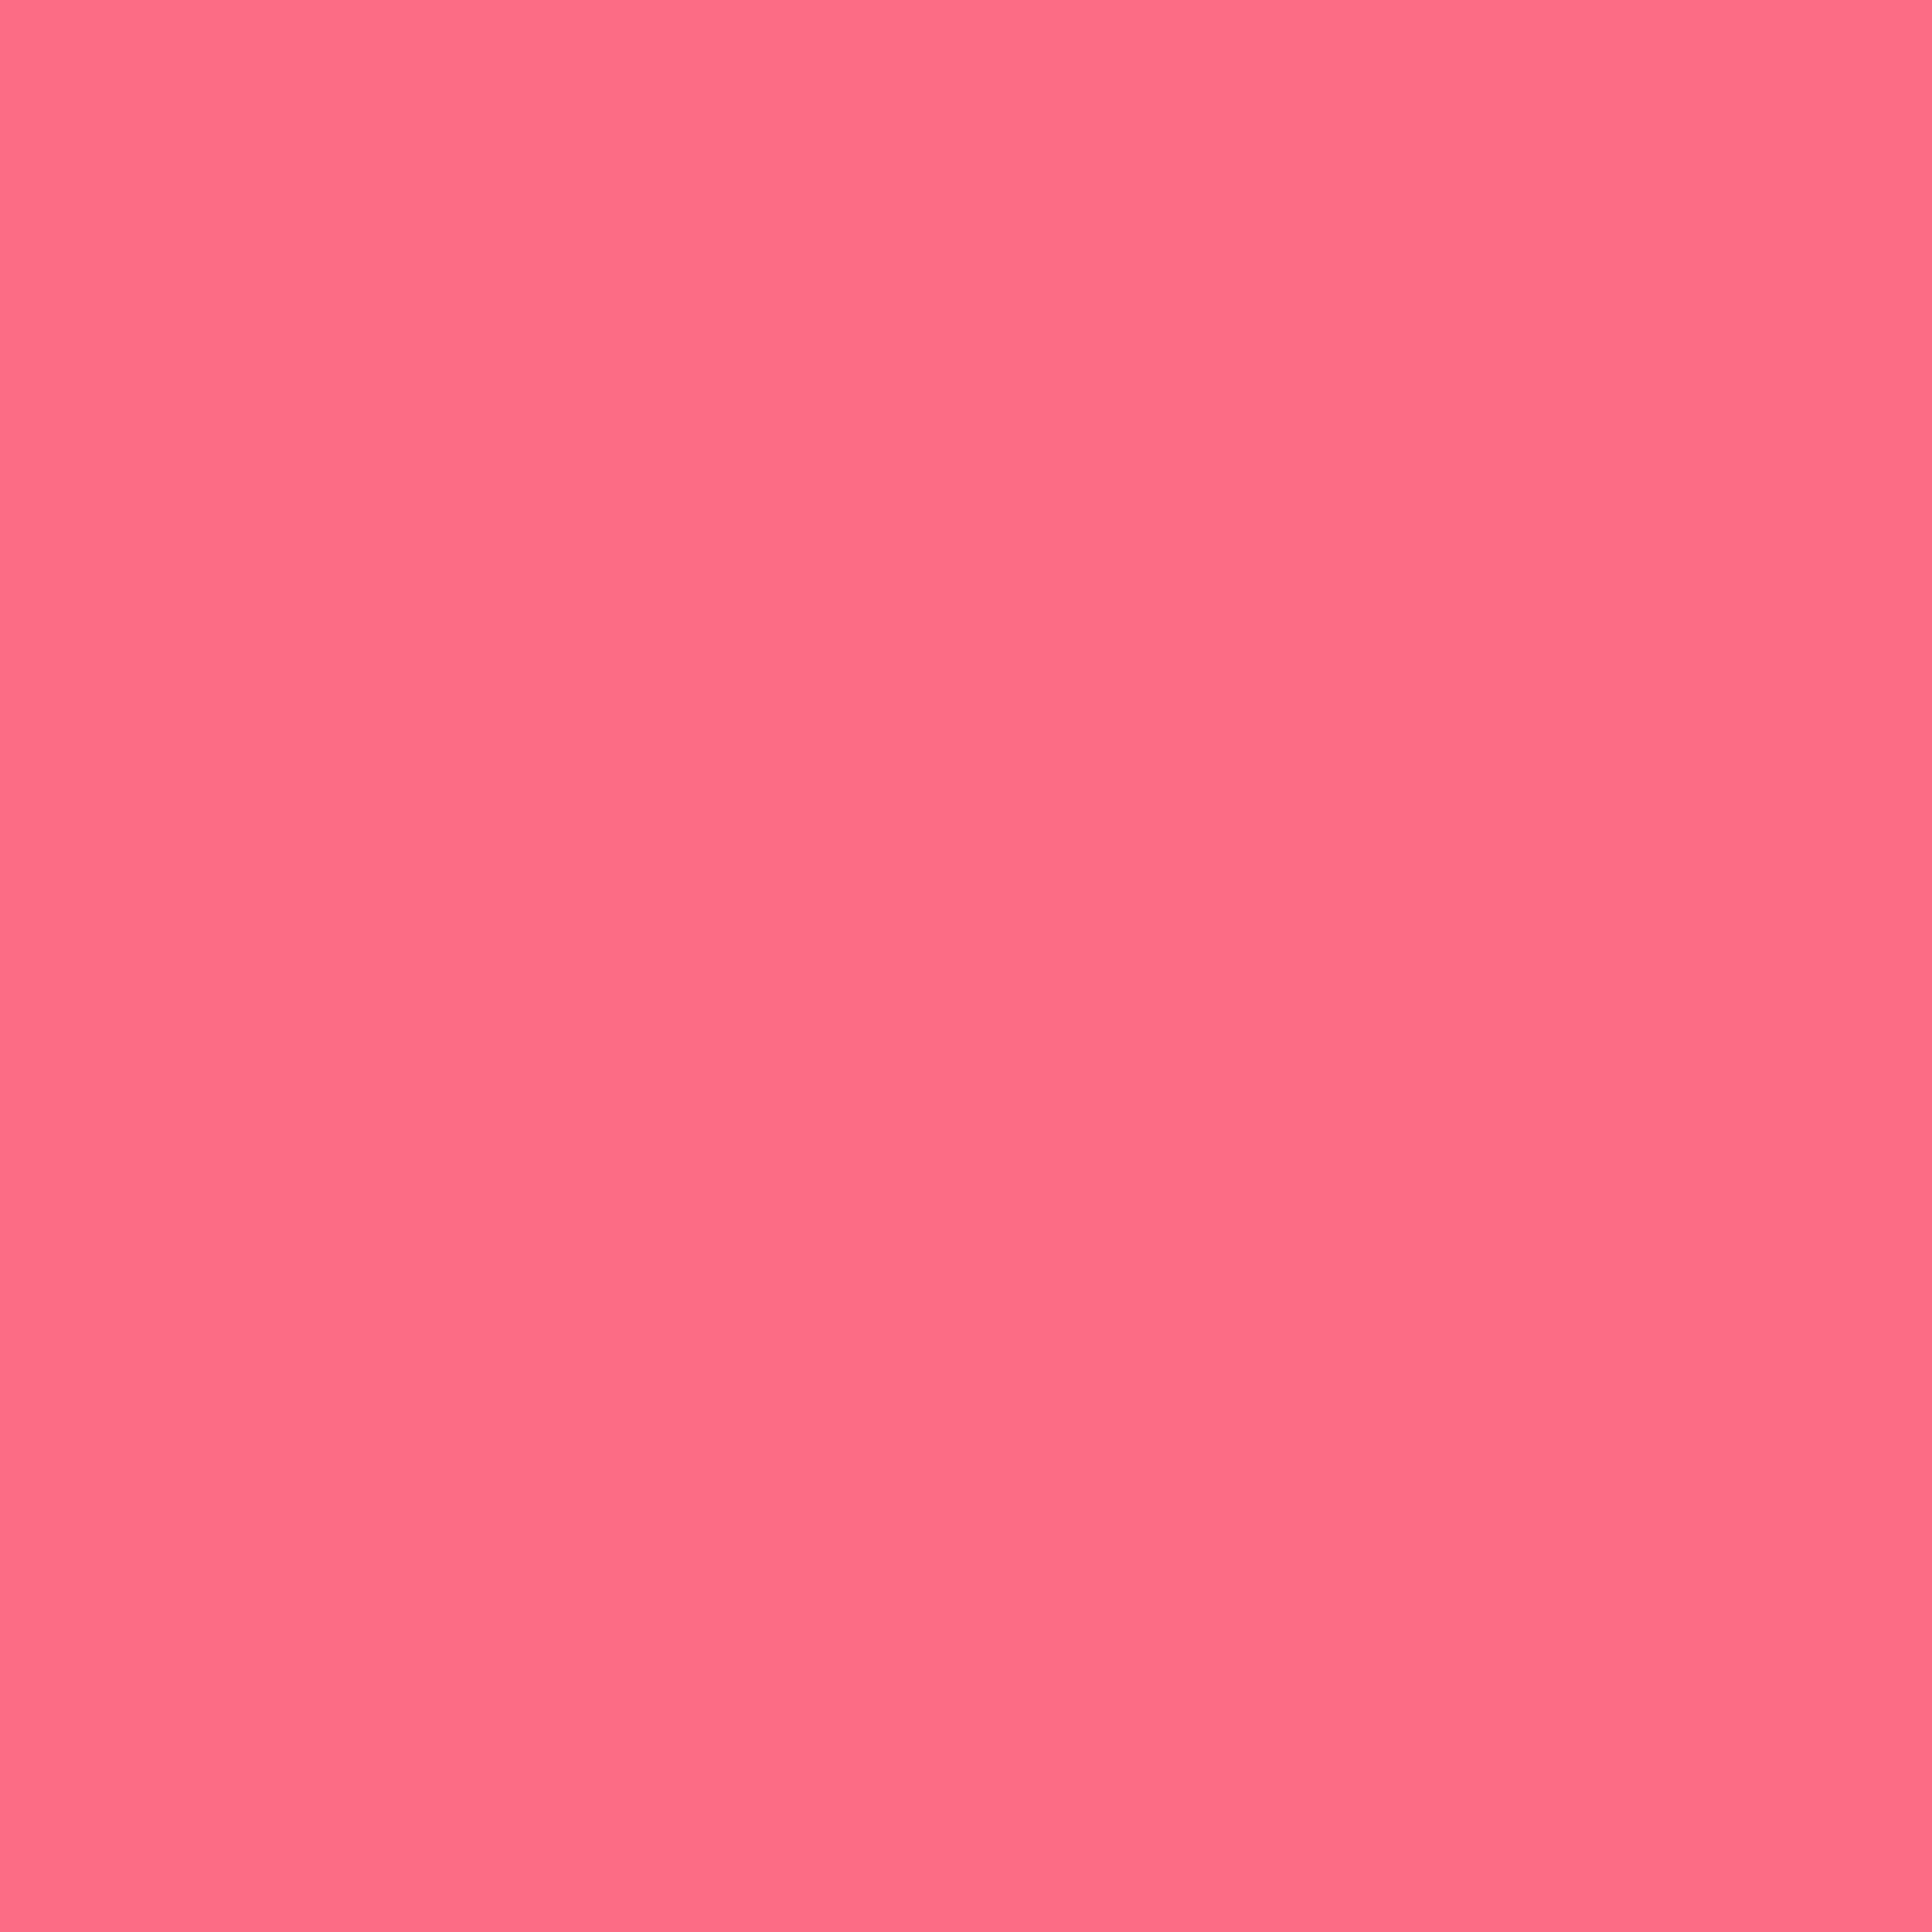 3600x3600 Wild Watermelon Solid Color Background